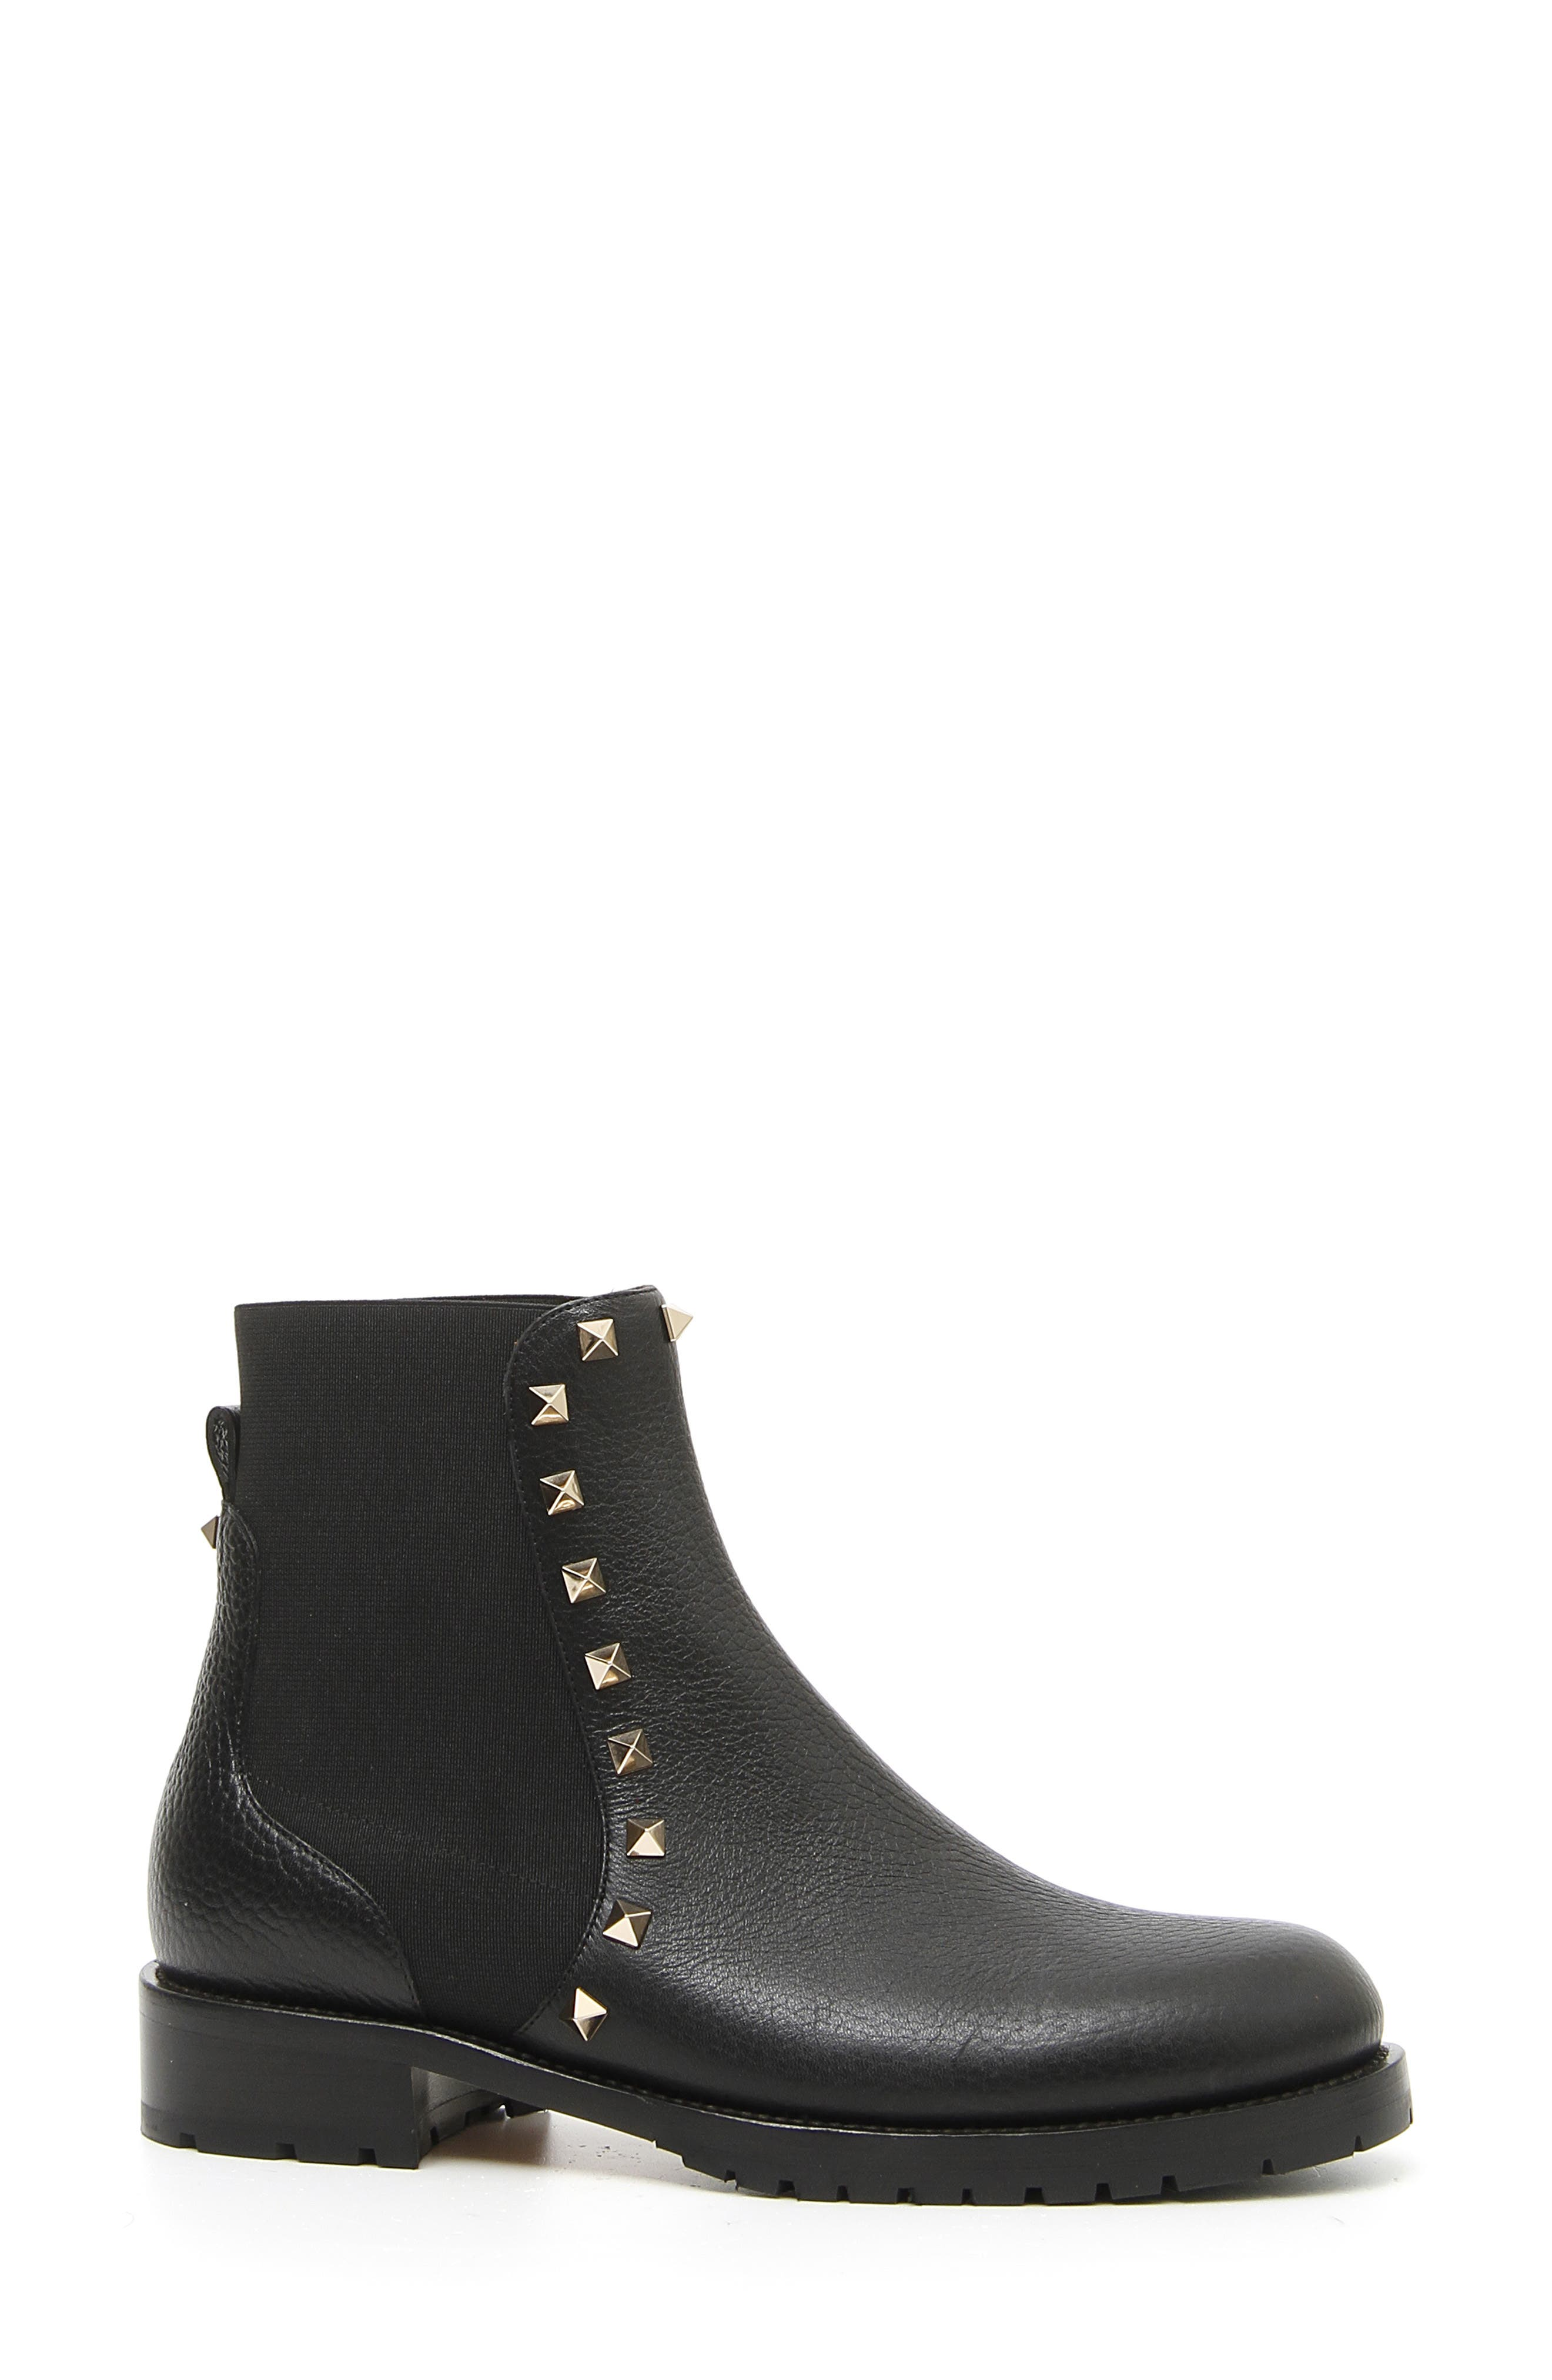 Rockstud Chelsea Boot,                         Main,                         color, BLACK PEBBLED LEATHER